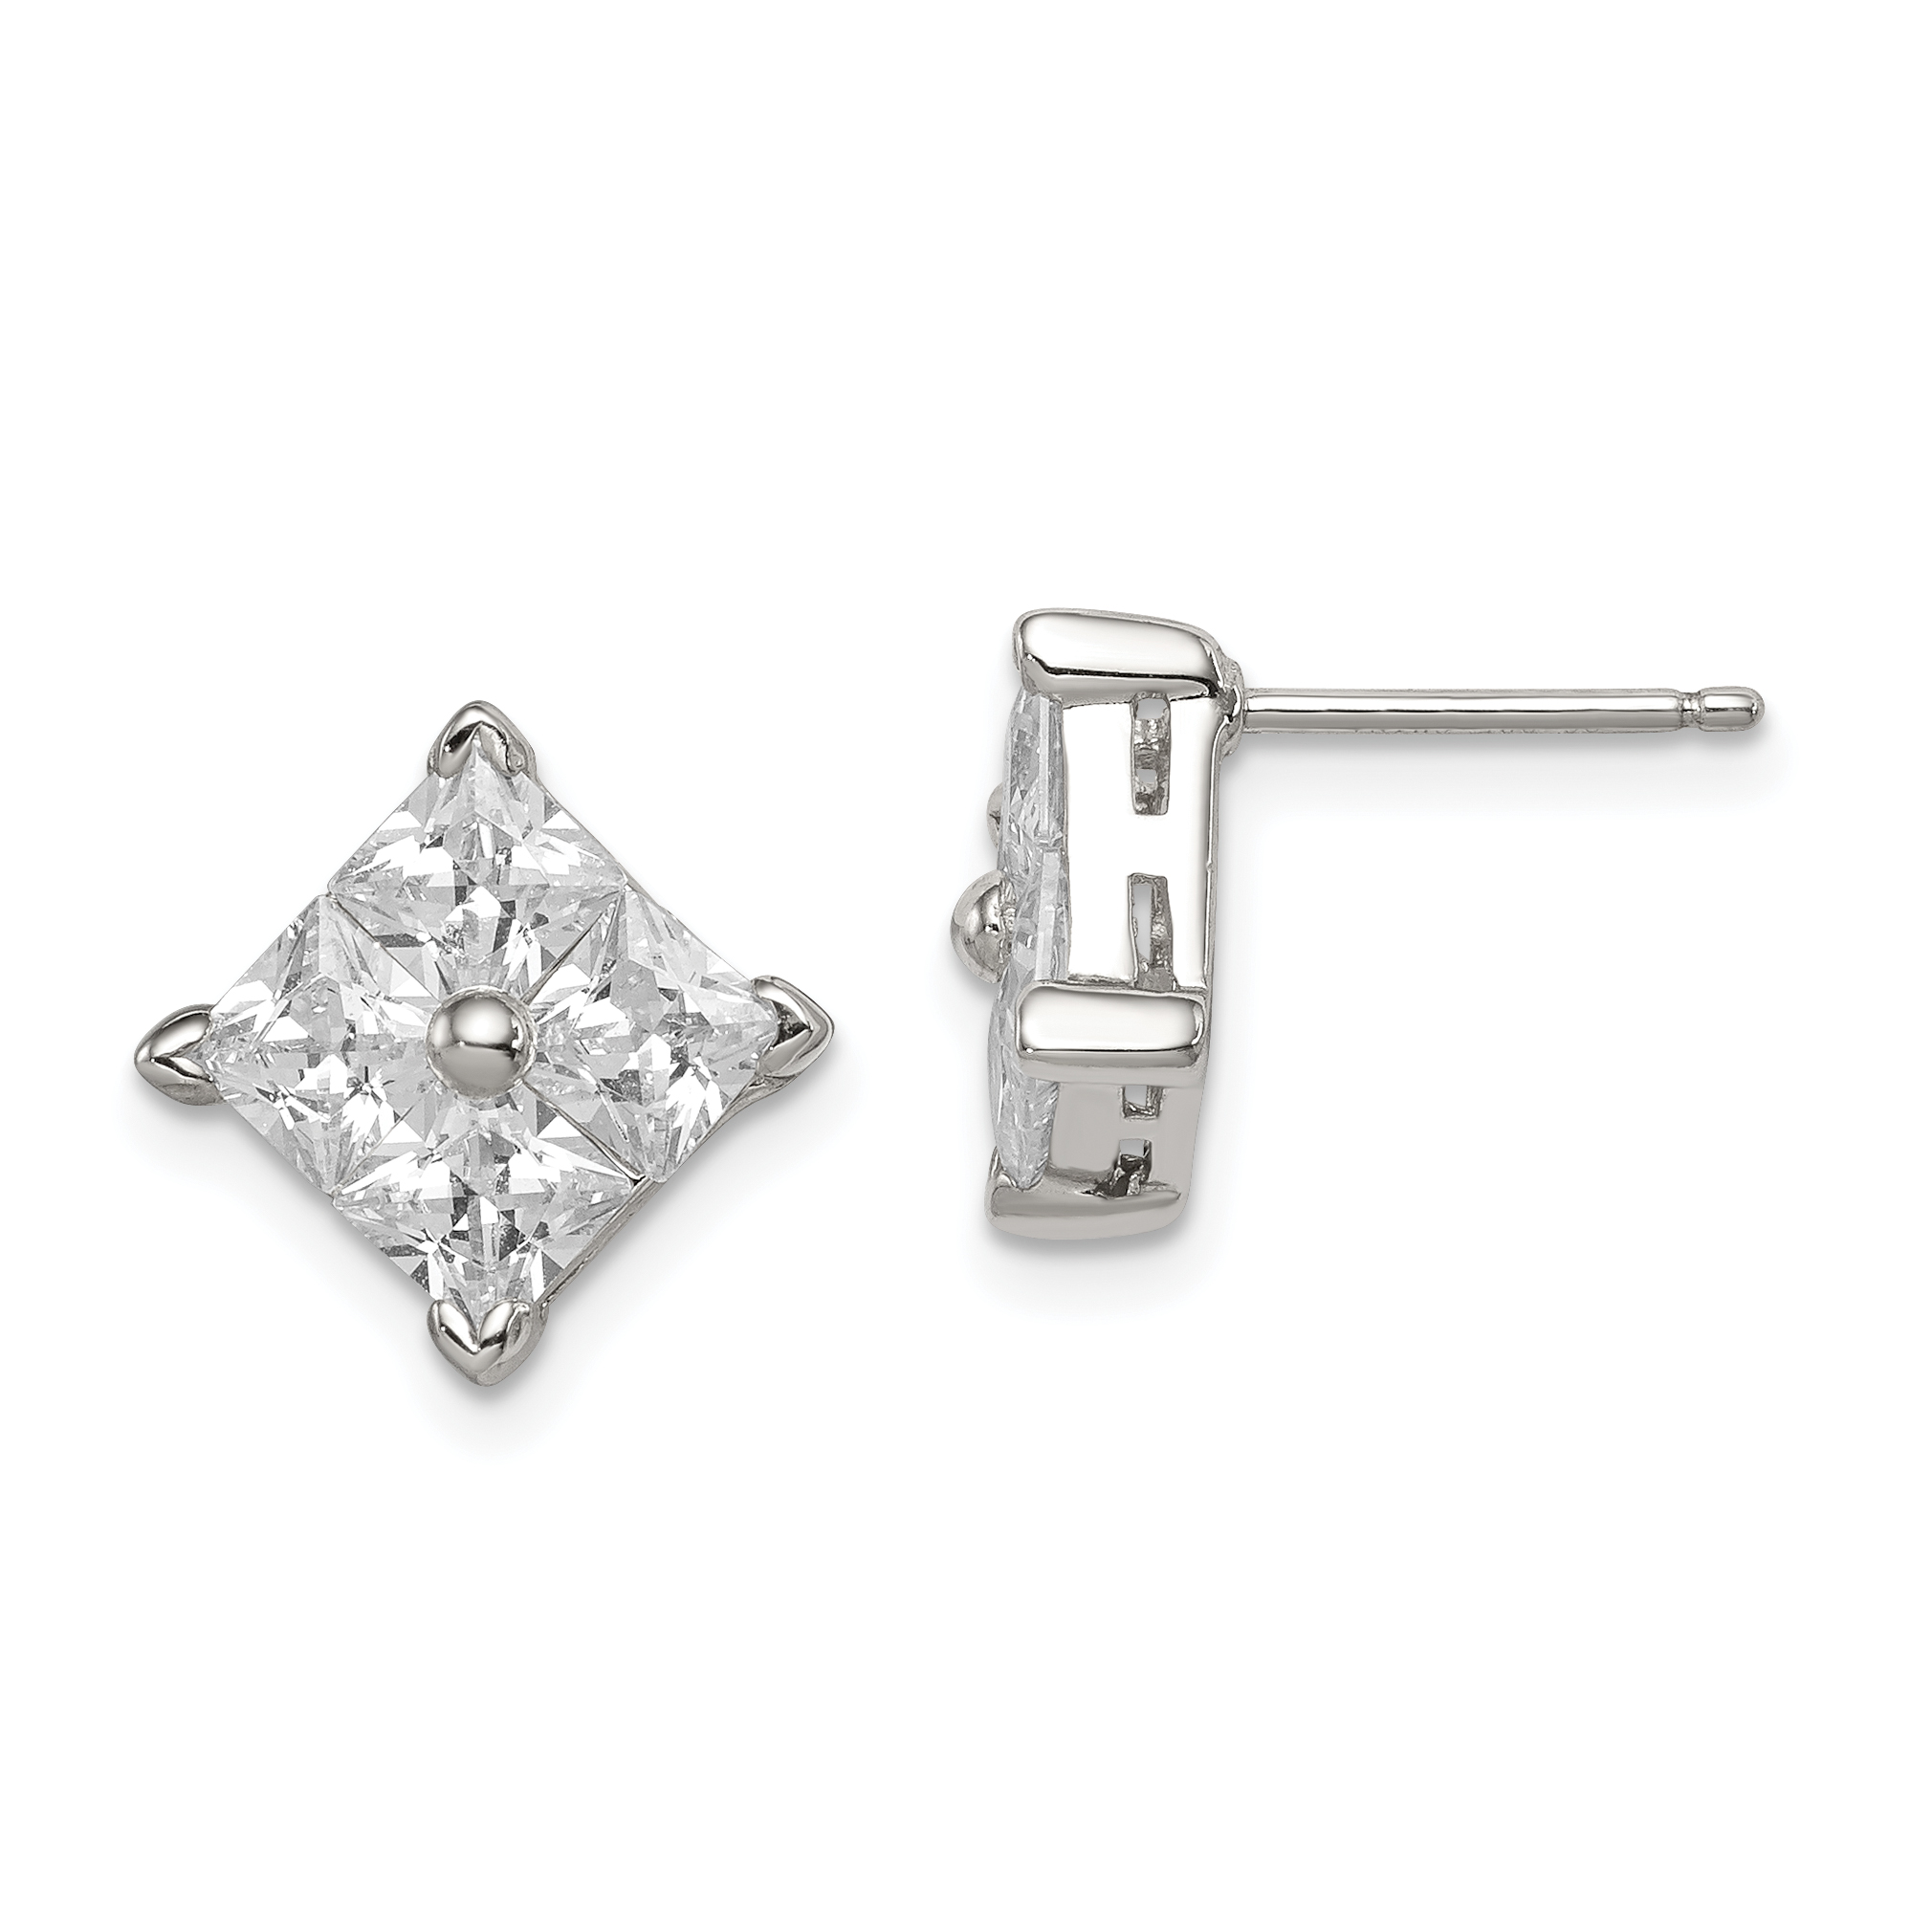 925 Sterling Silver Cubic Zirconia Cz Large Square Post